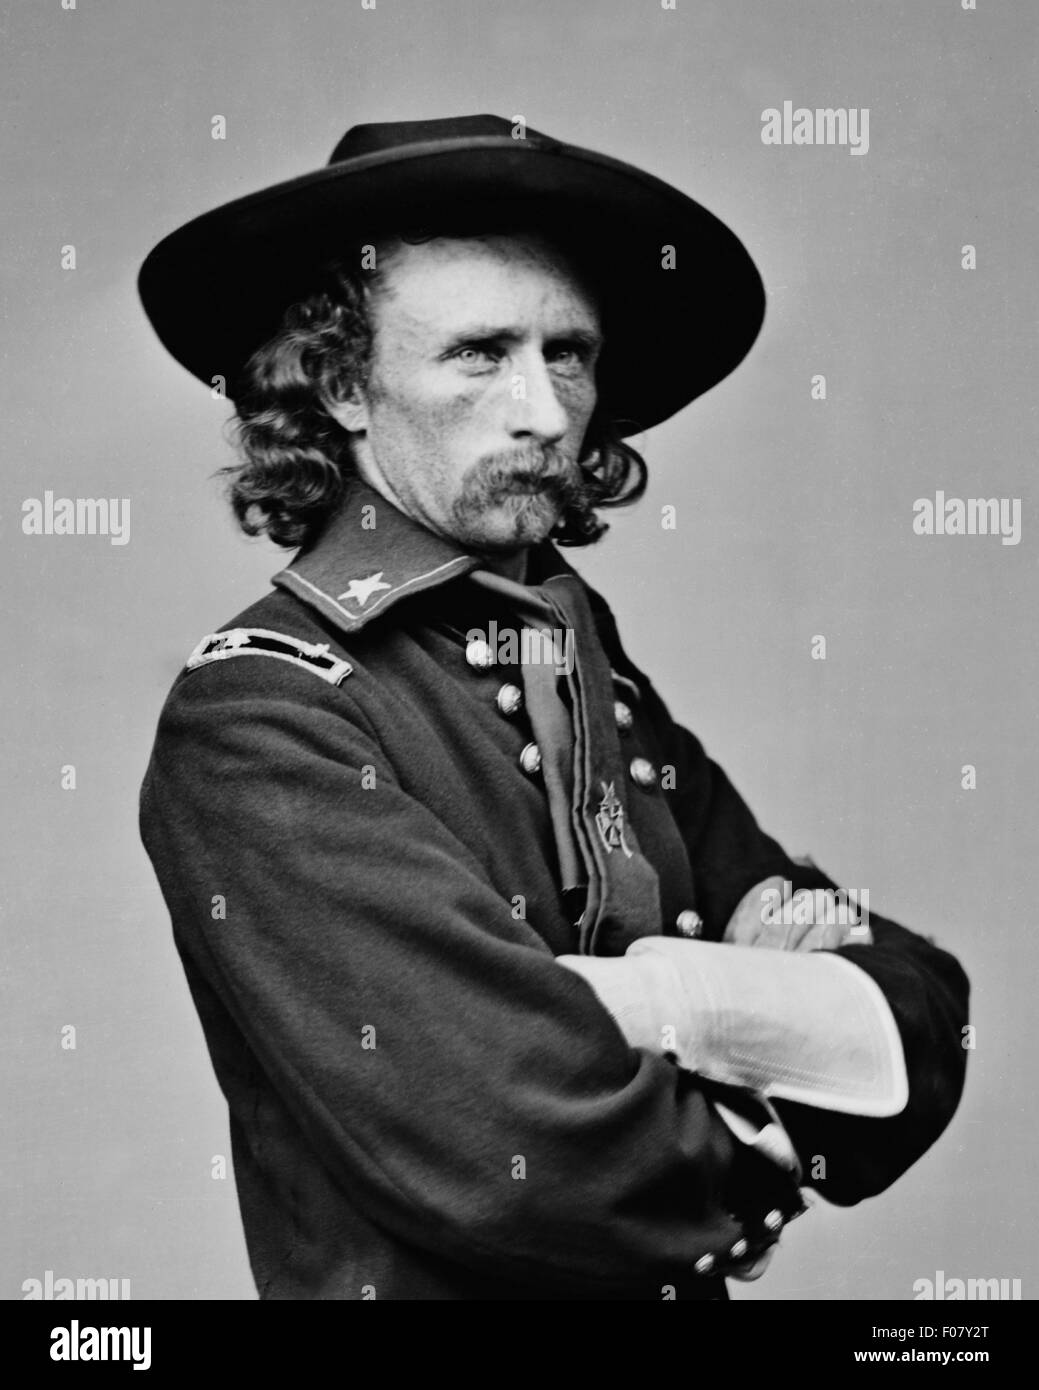 Brevet Major General George Armstrong Custer in field uniform circa 1865. Unattributed photograph. - Stock Image